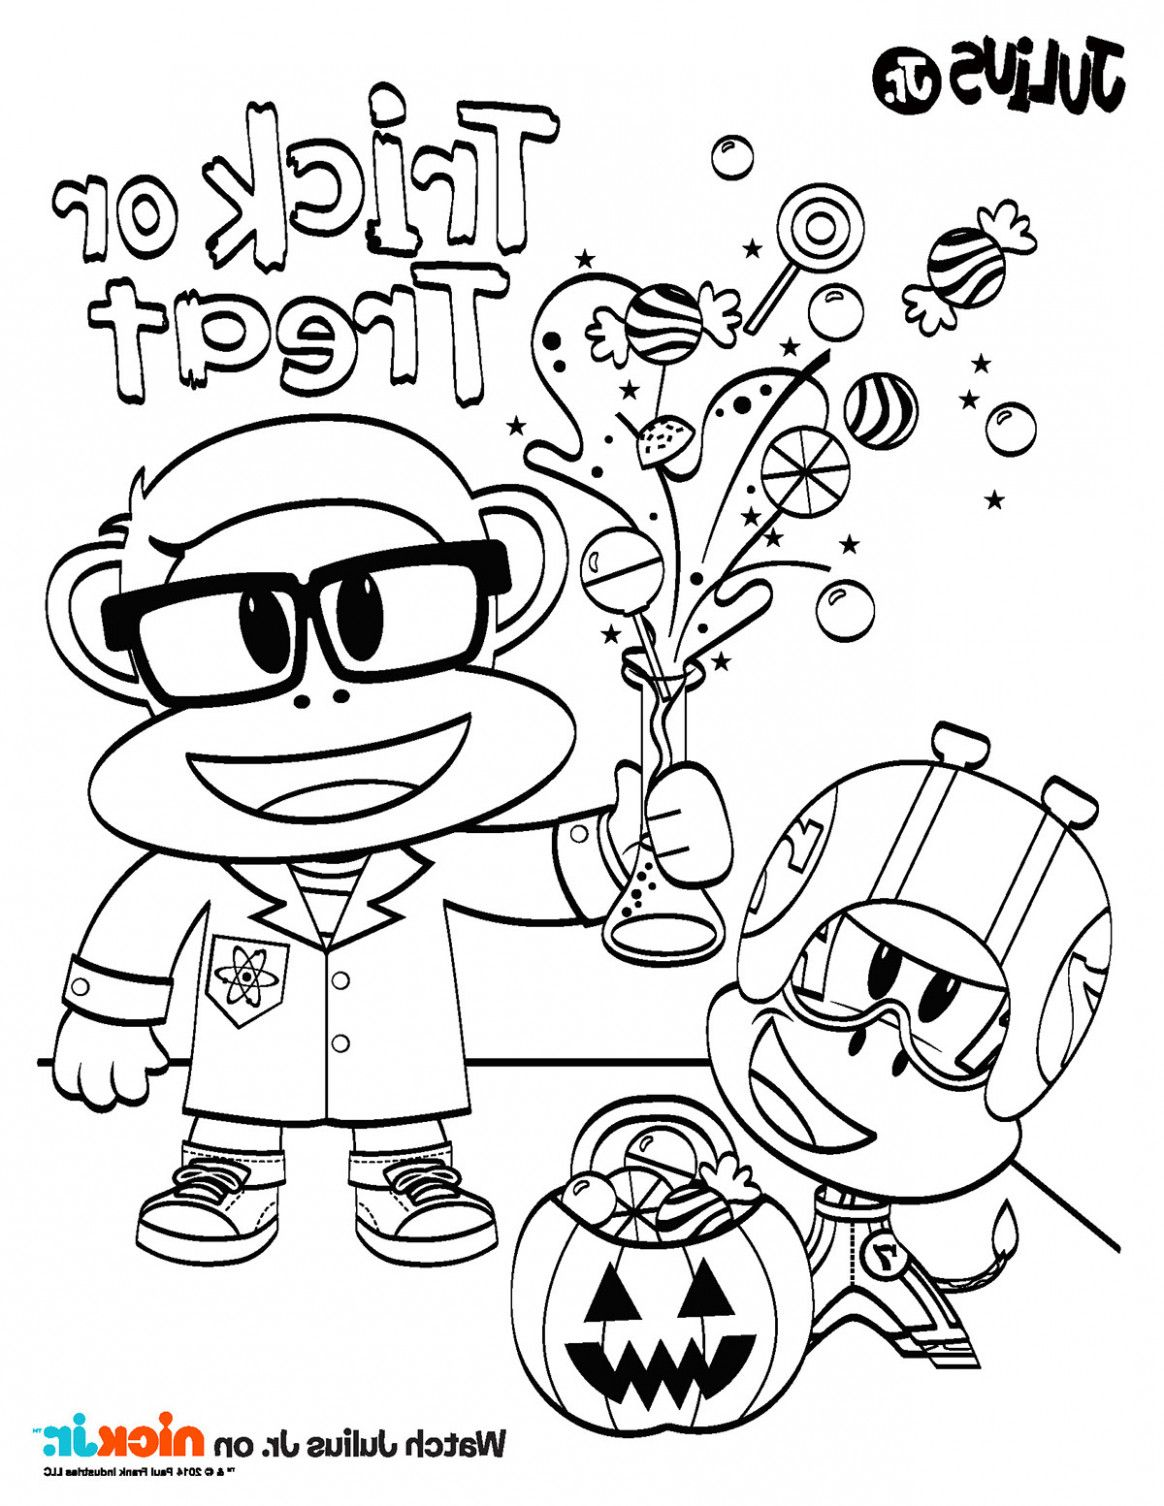 What You Should Wear To Printable Disney Jr Halloween Coloring Pages Coloring Halloween Coloring Coloring Pages Disney Halloween Coloring Pages